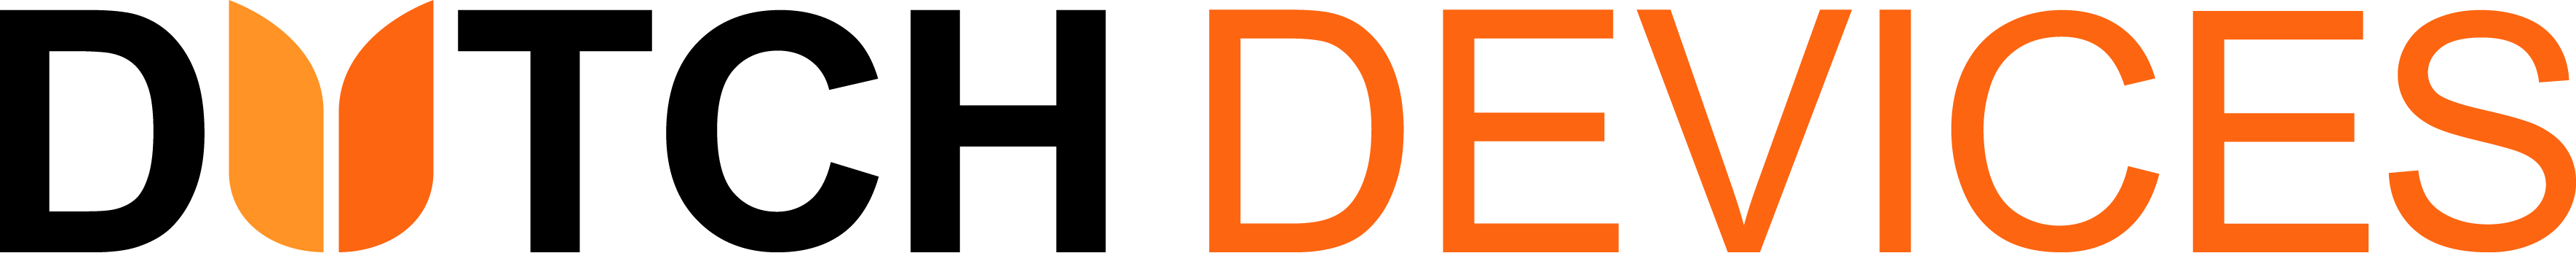 LOGO-DutchDevices